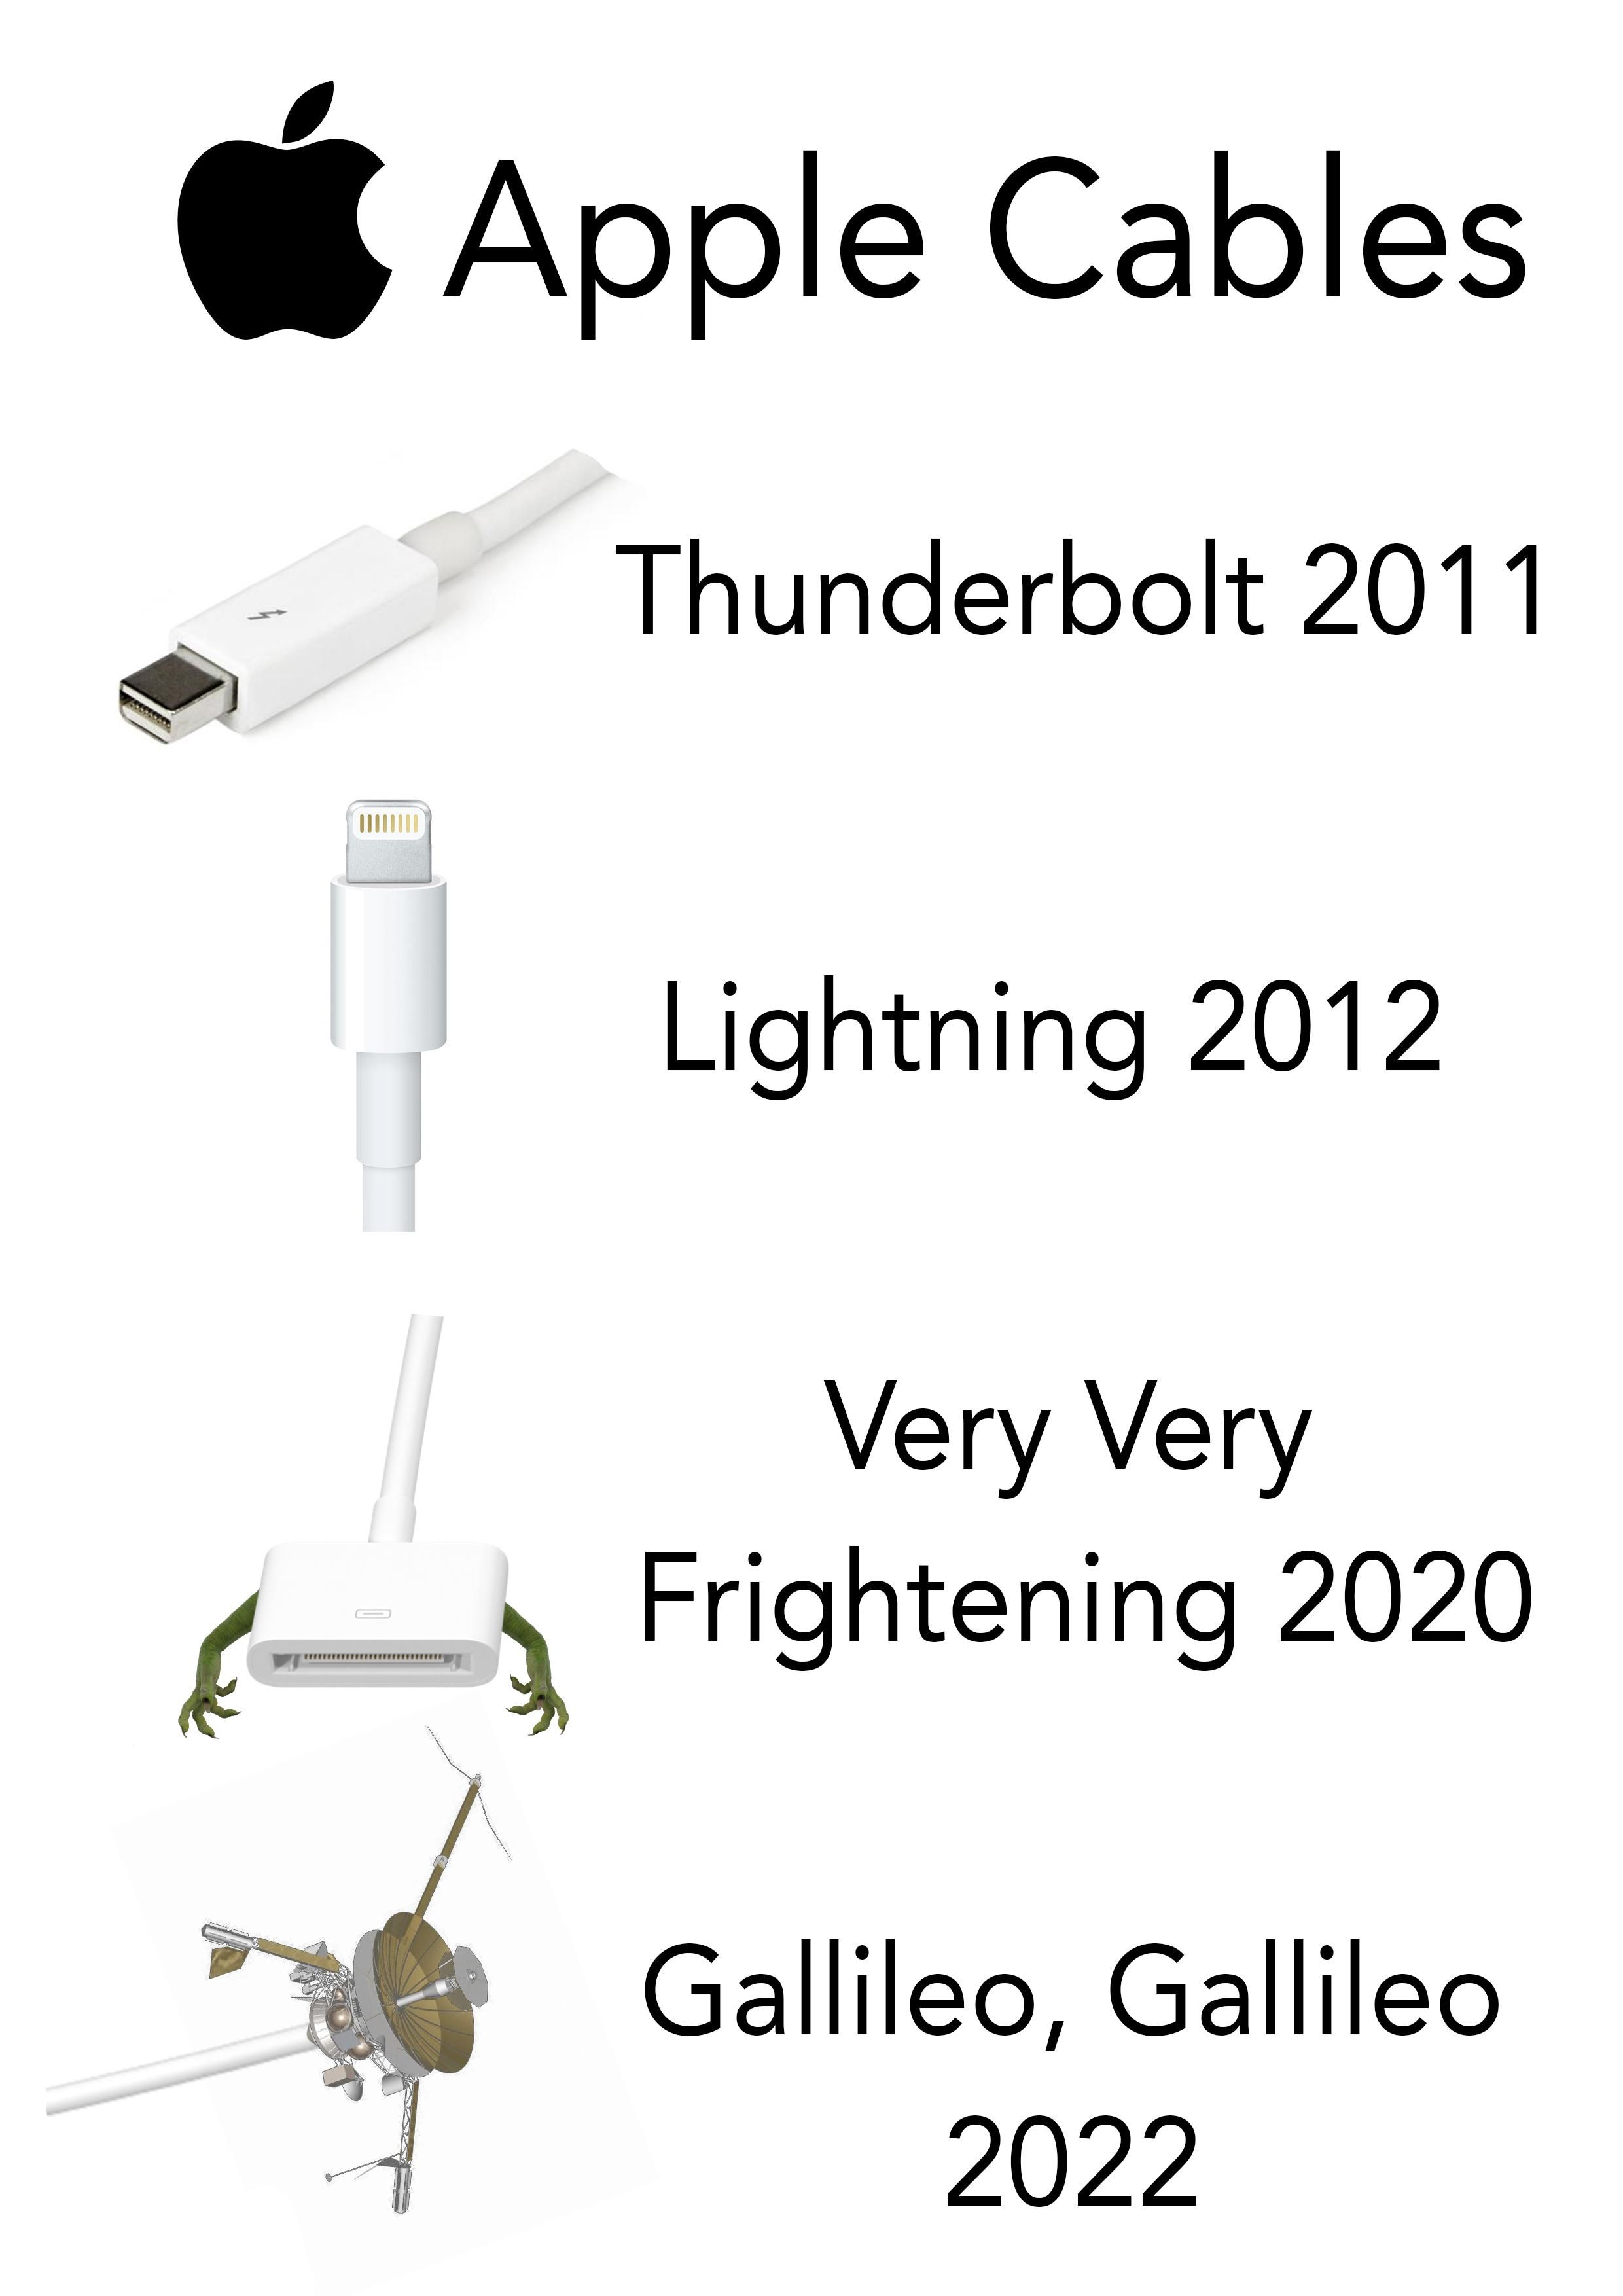 How Apple name their cables.